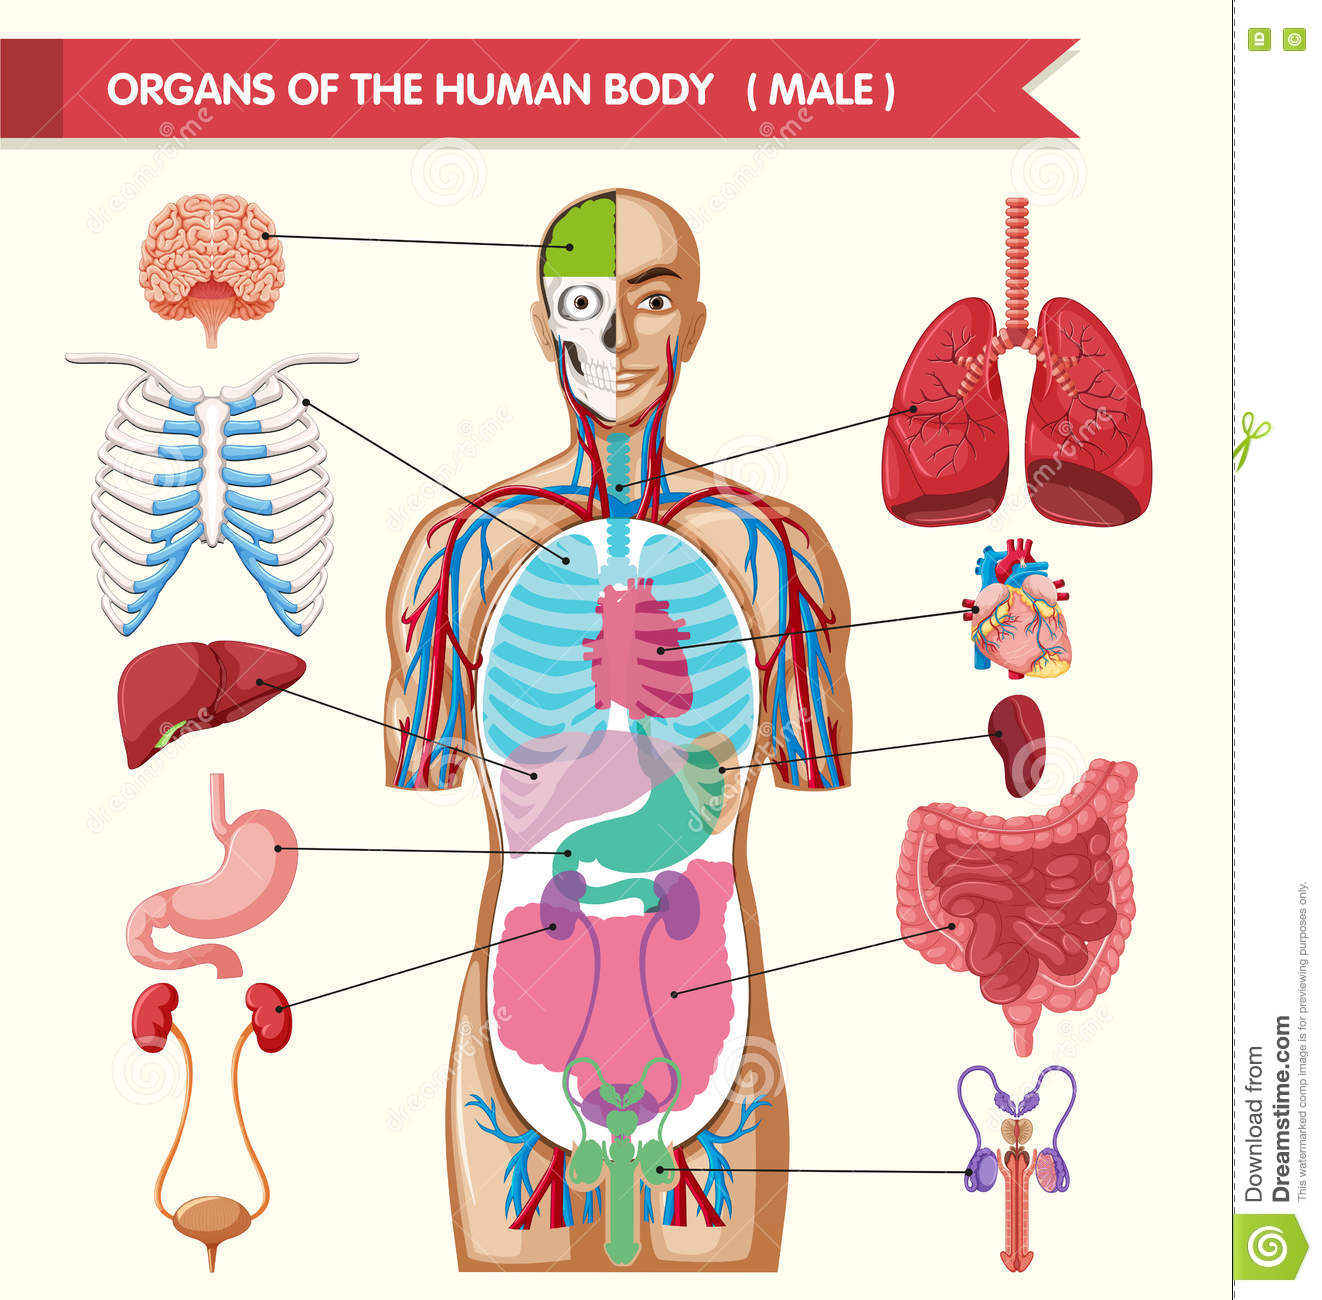 Picture of the human body showing organs